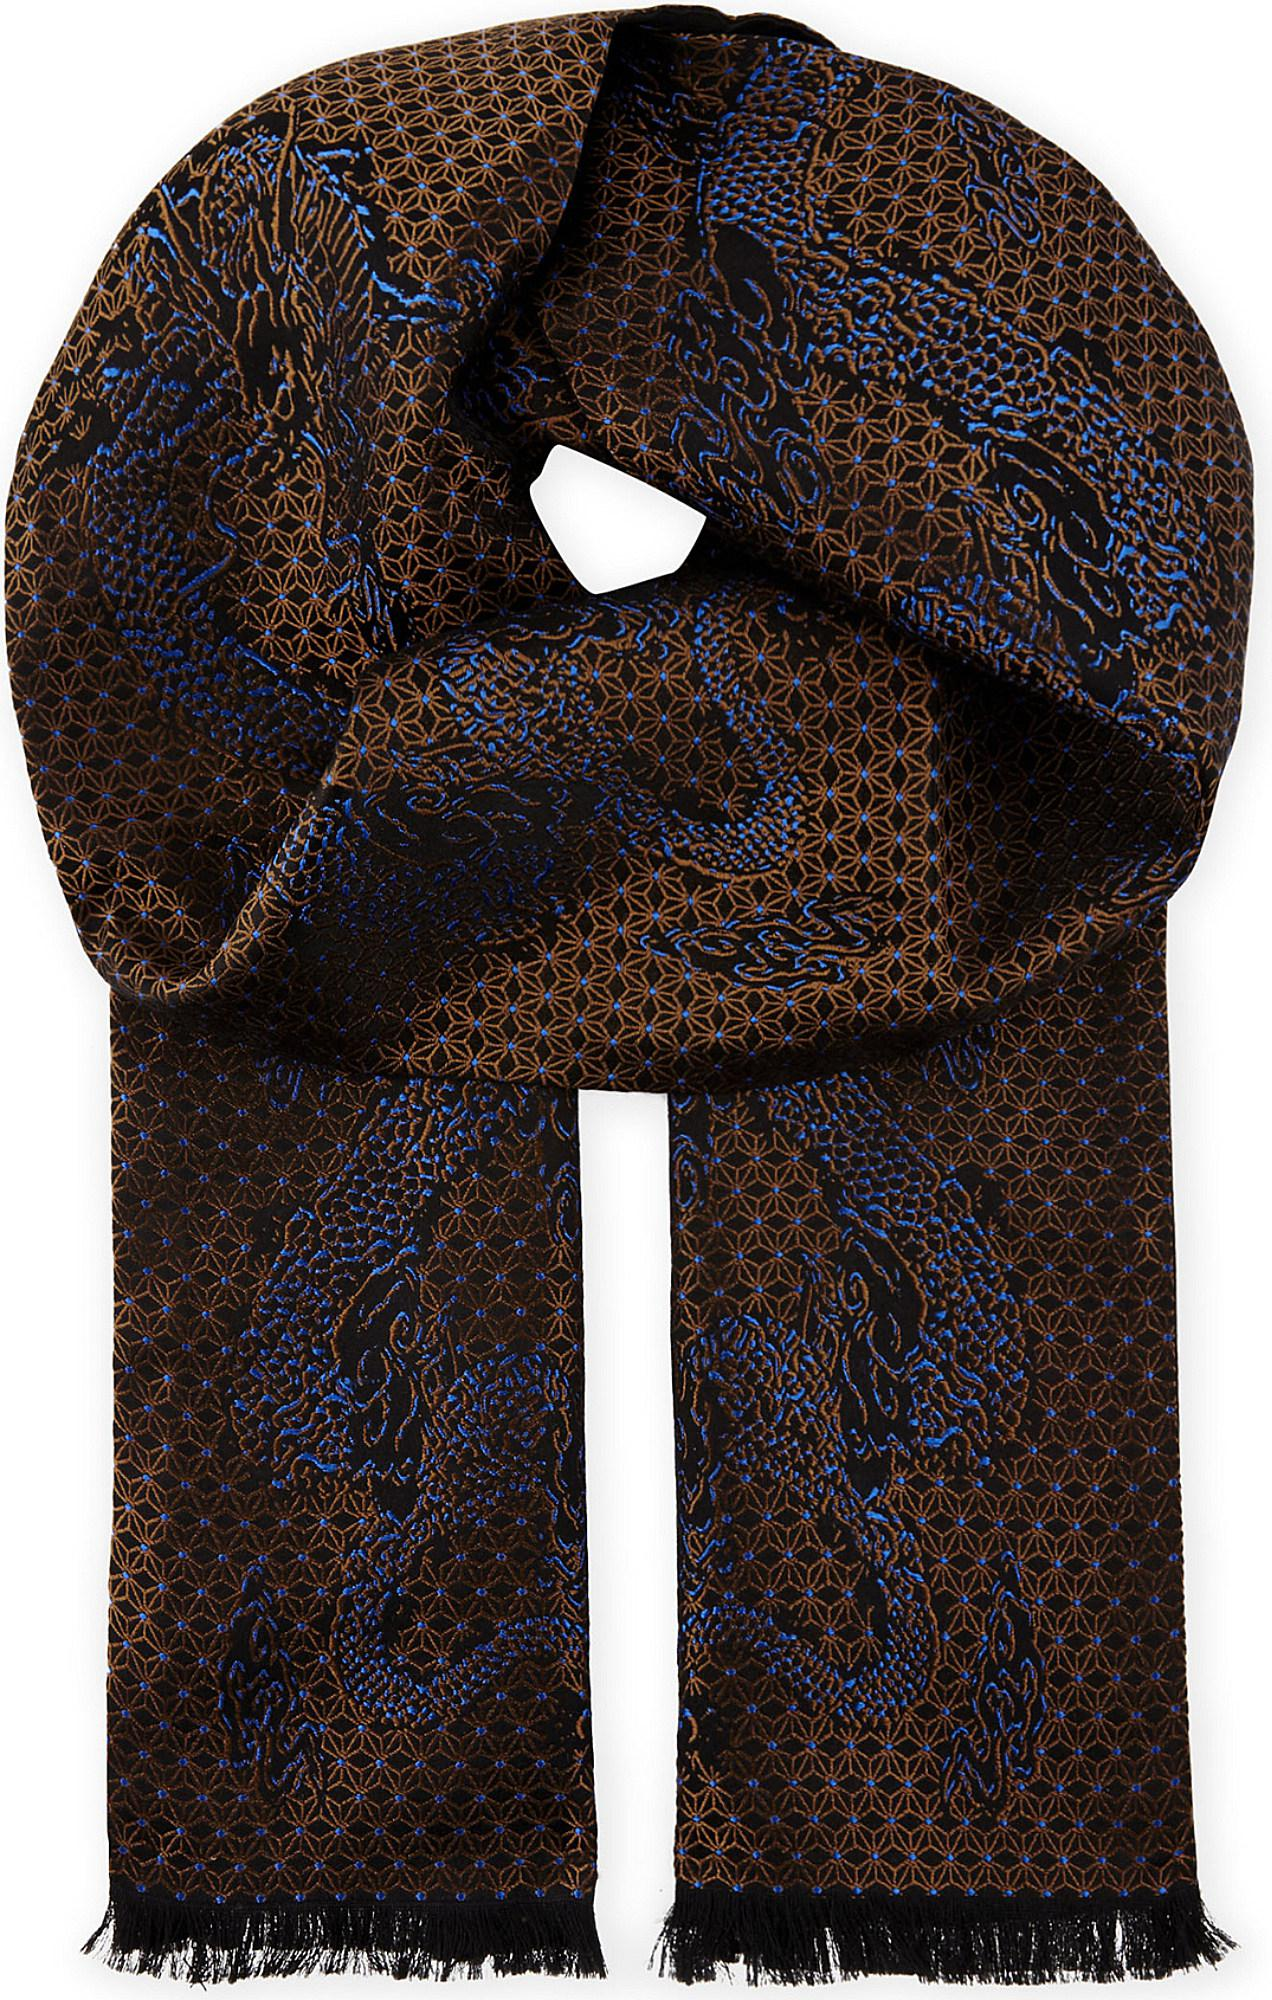 Lyst - The Kooples Dragon Pattern Silk Scarf for Men